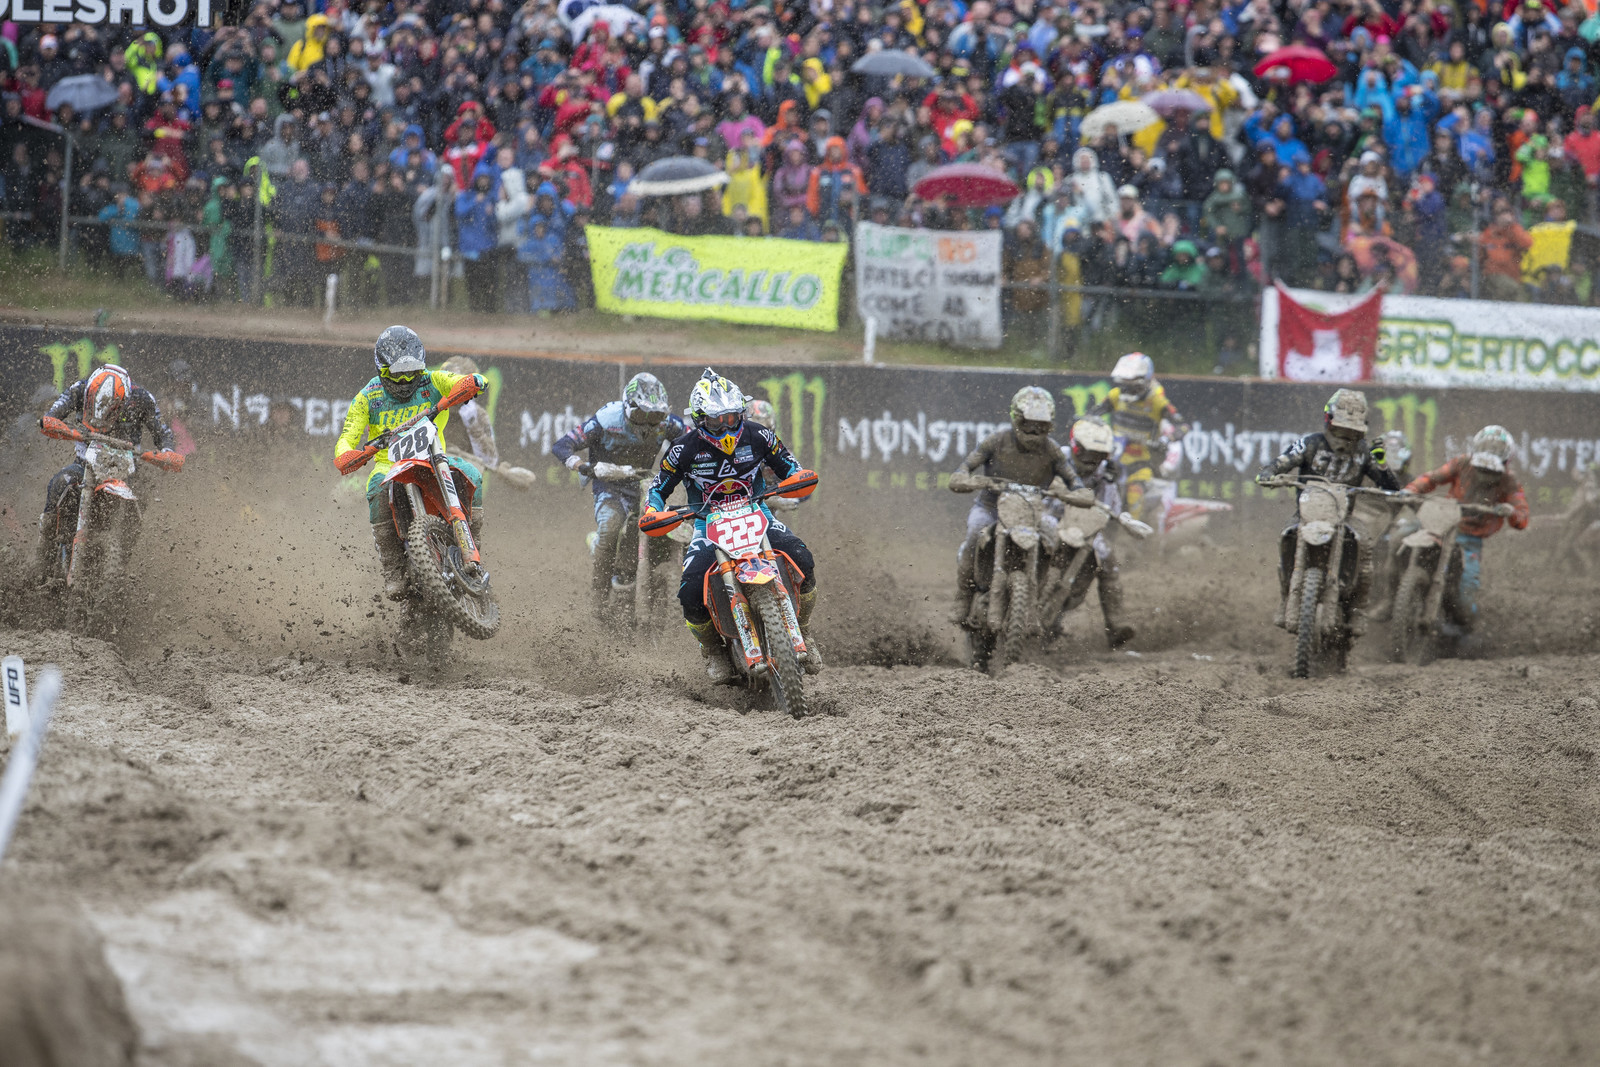 But the actual racing on Sunday was a sloppy mess. No wonder the MXGP guys can ride so well in horrible conditions.